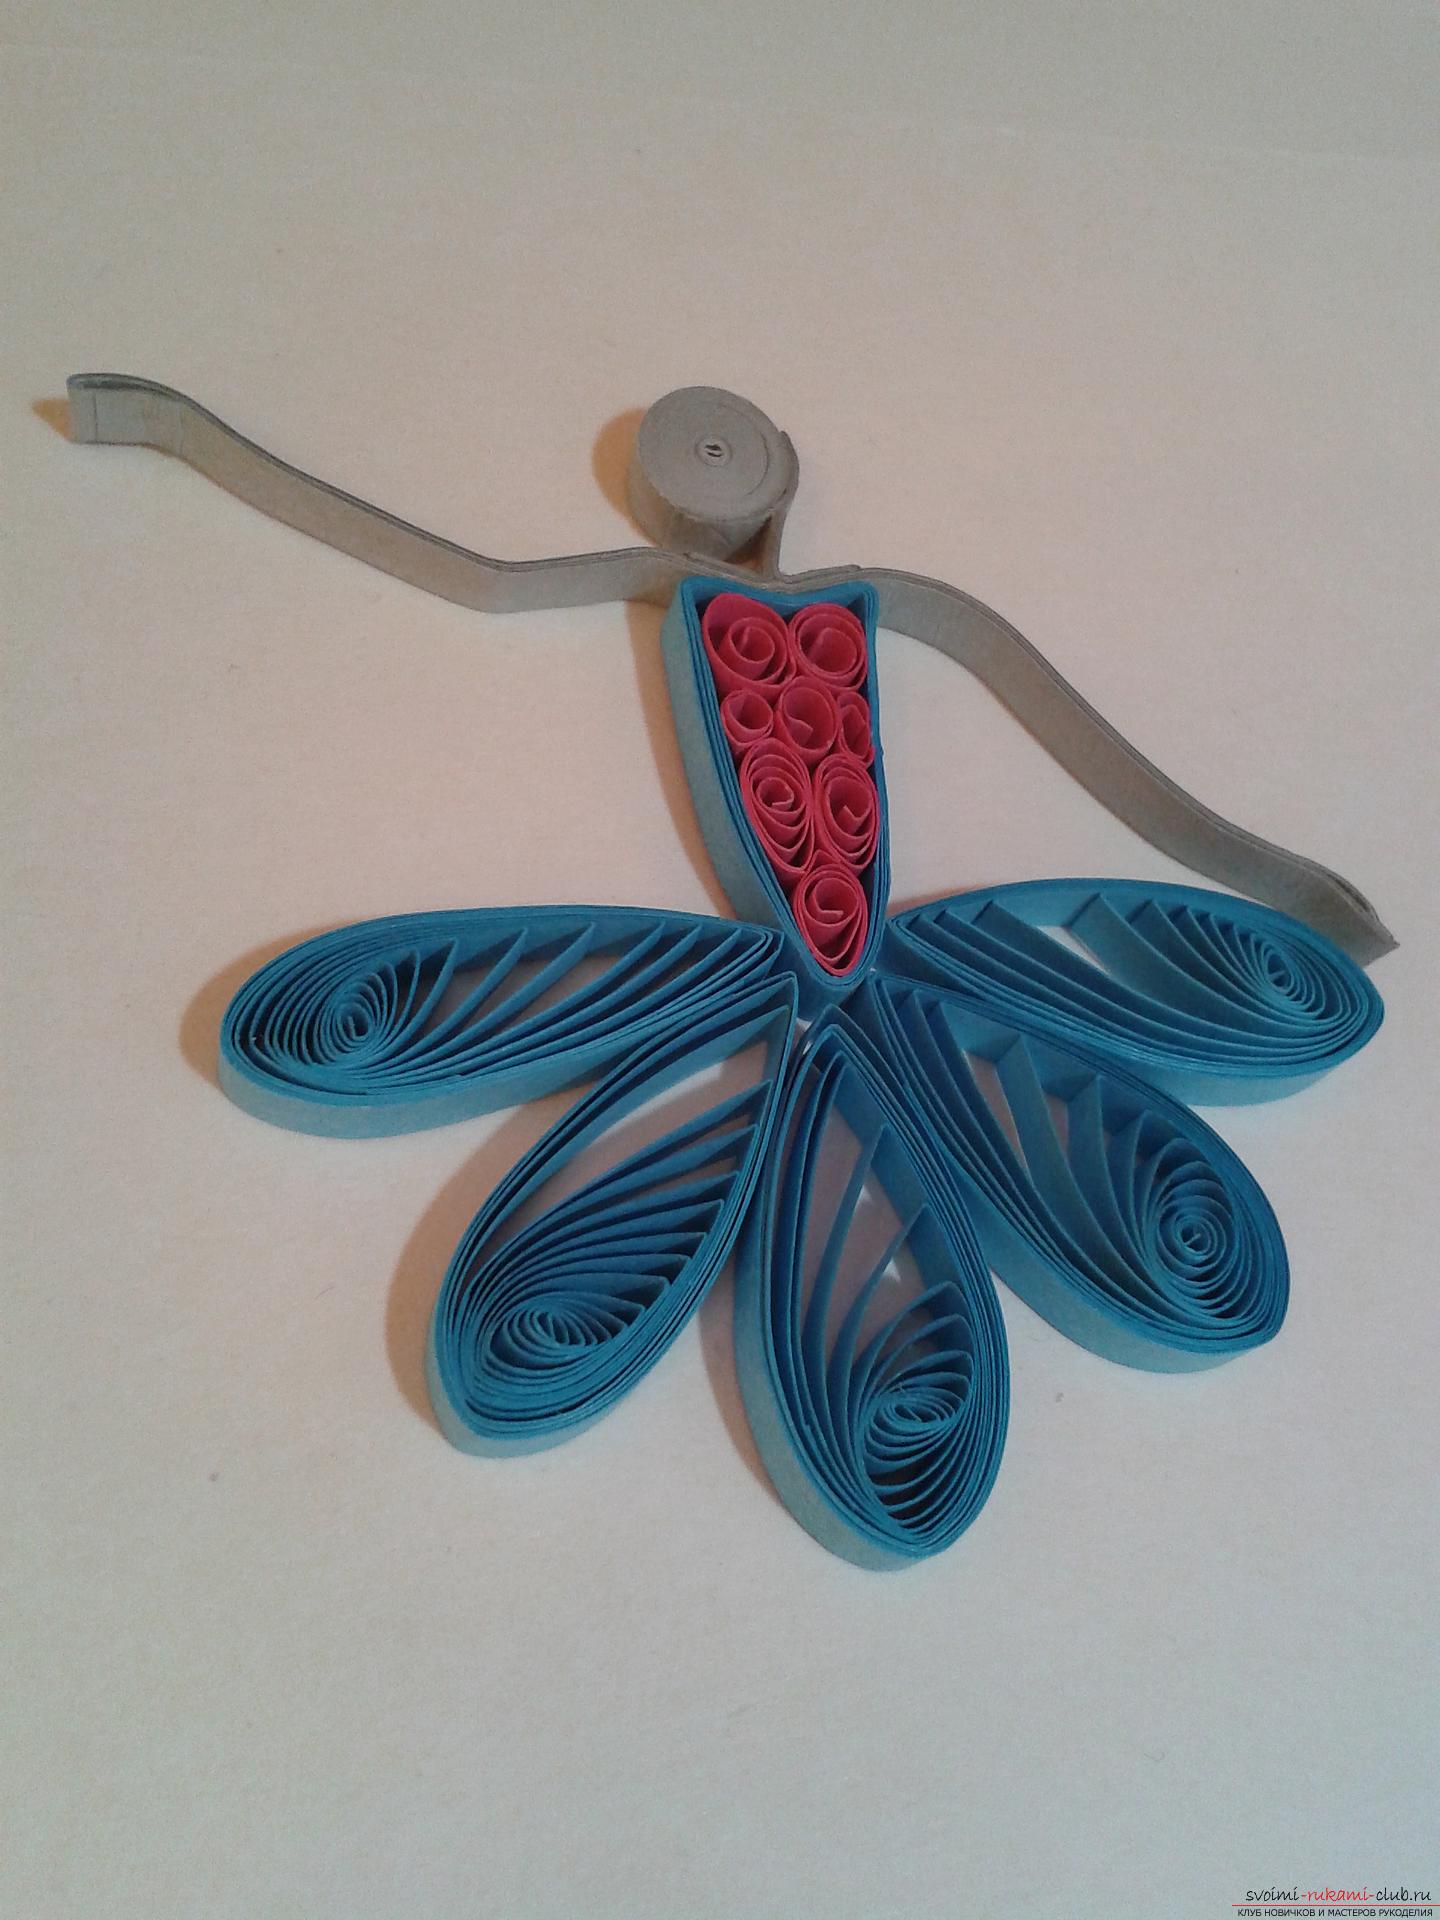 This detailed master class contains a lesson of quilling for beginners and will teach you how to make your own quilling ballerina. Picture number 16